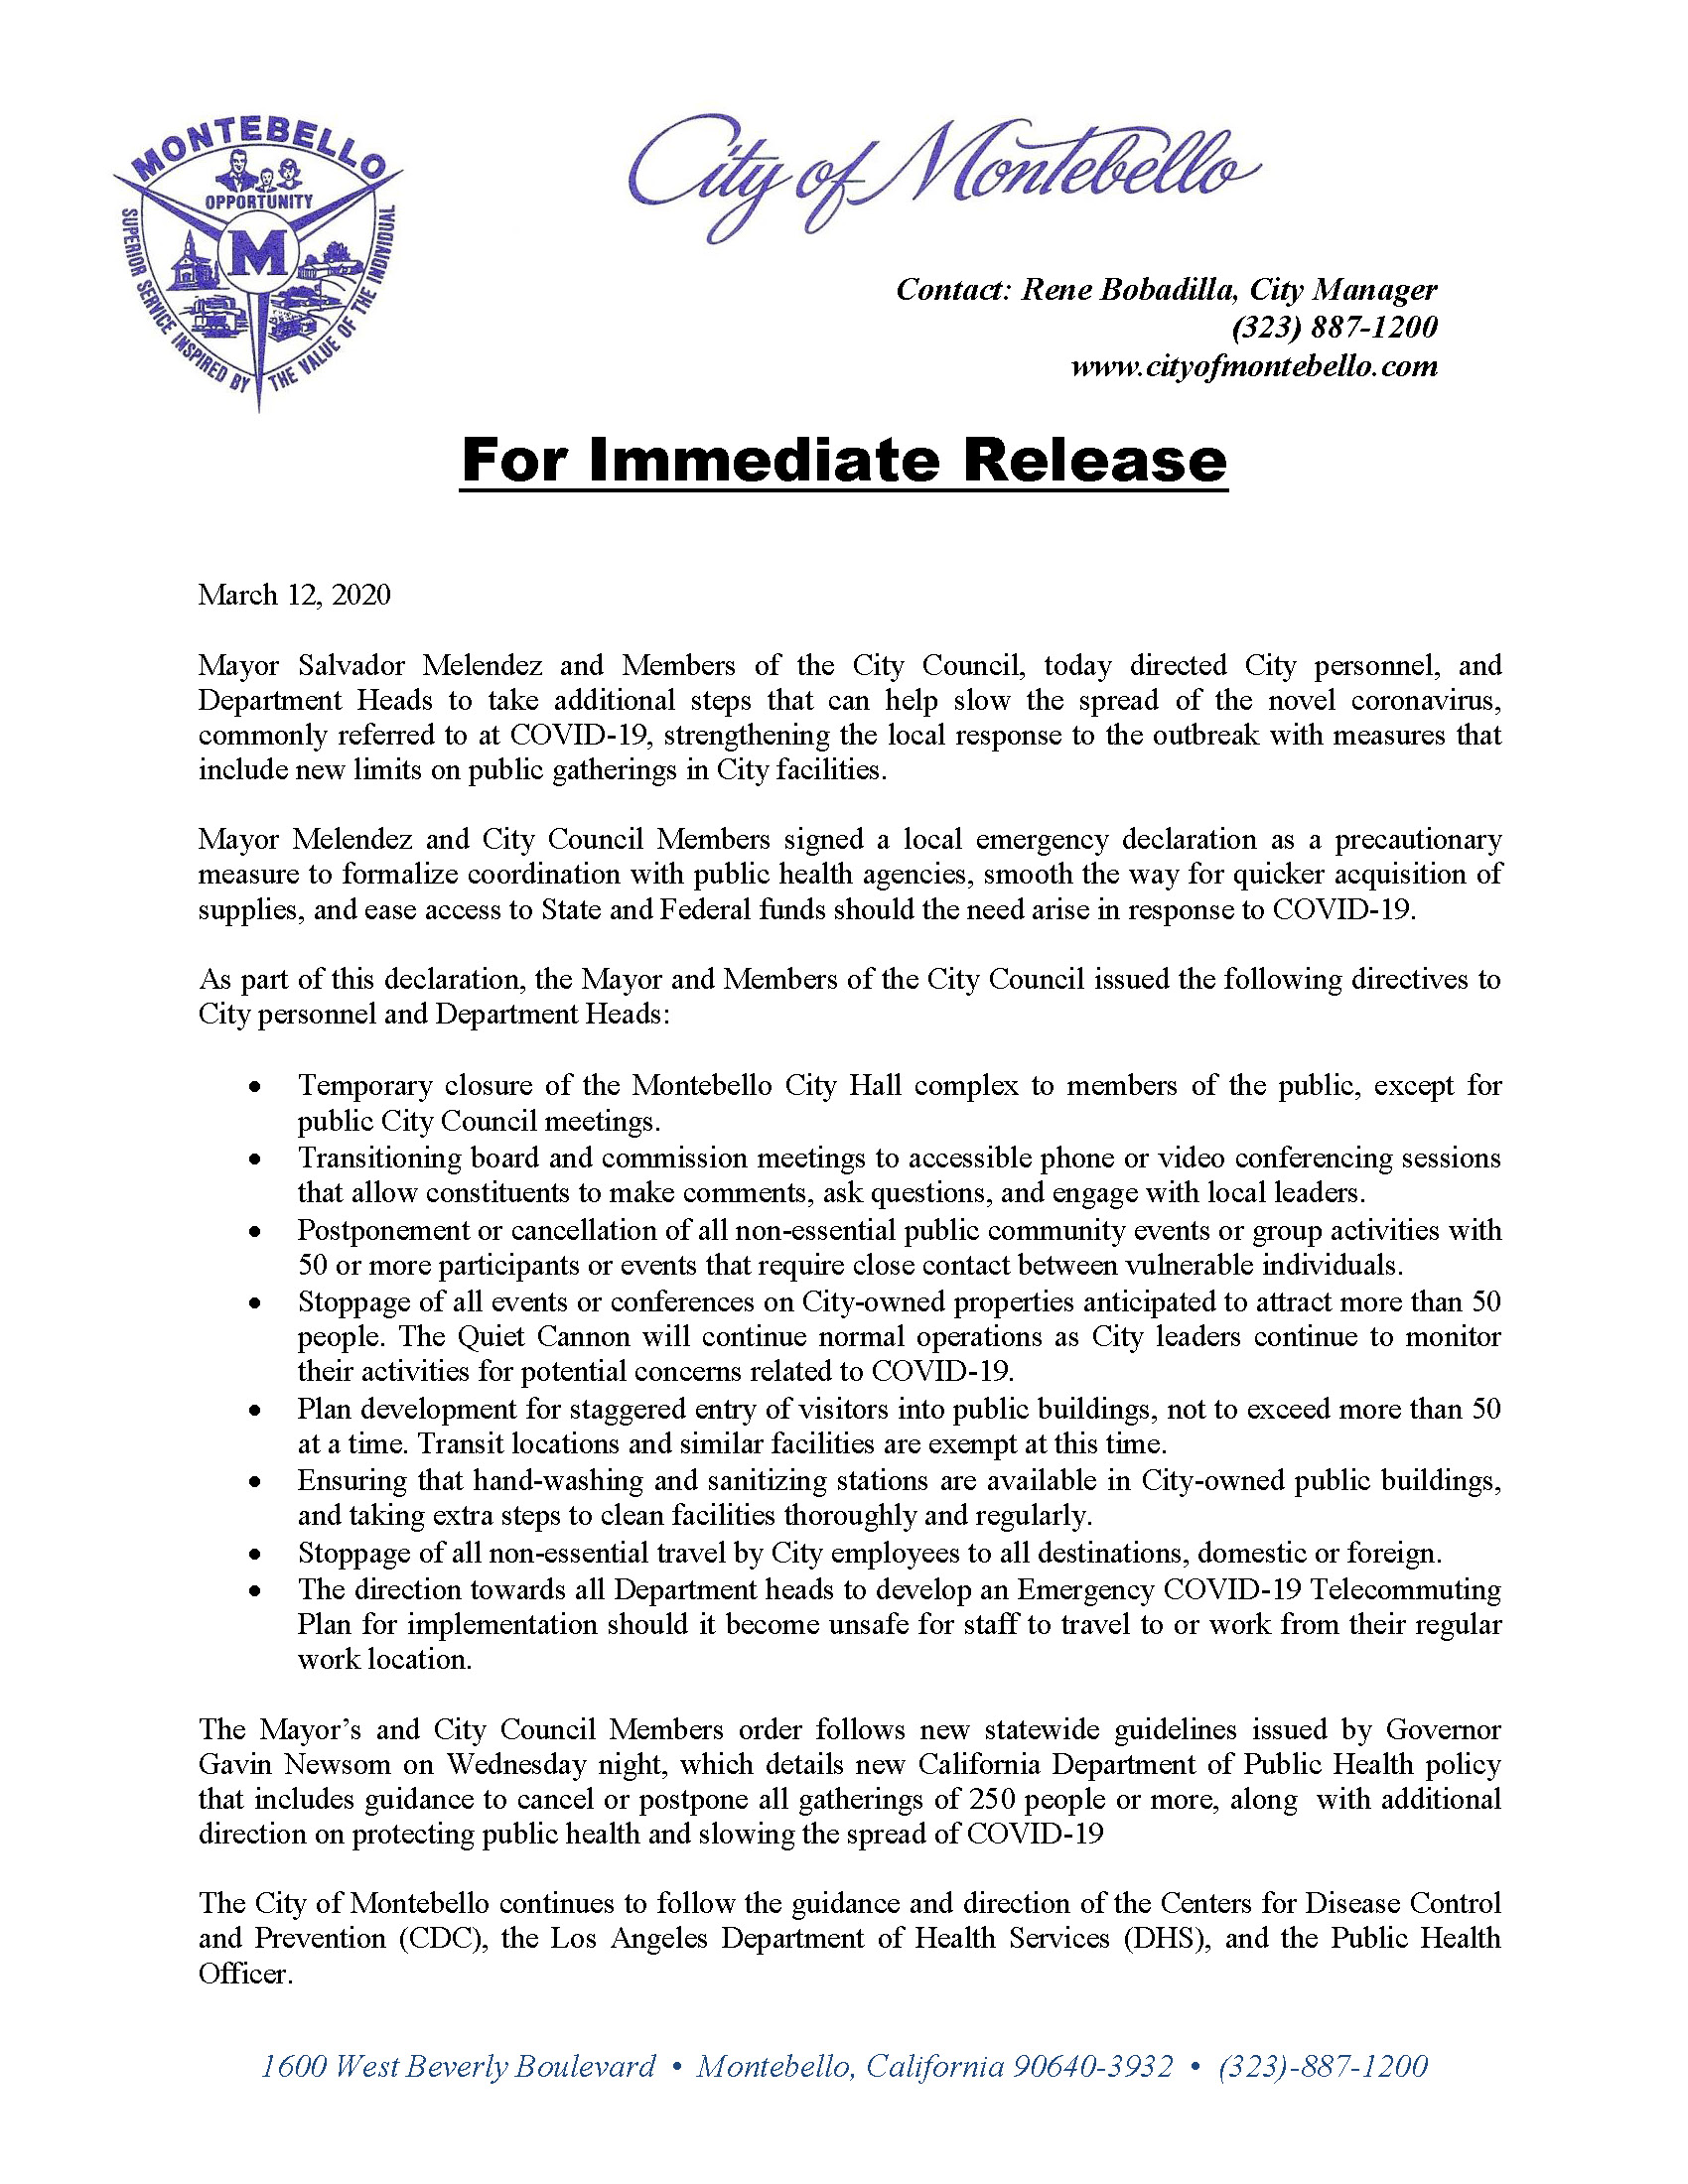 City of Montebello Media Release COVID 19 March 12 2020